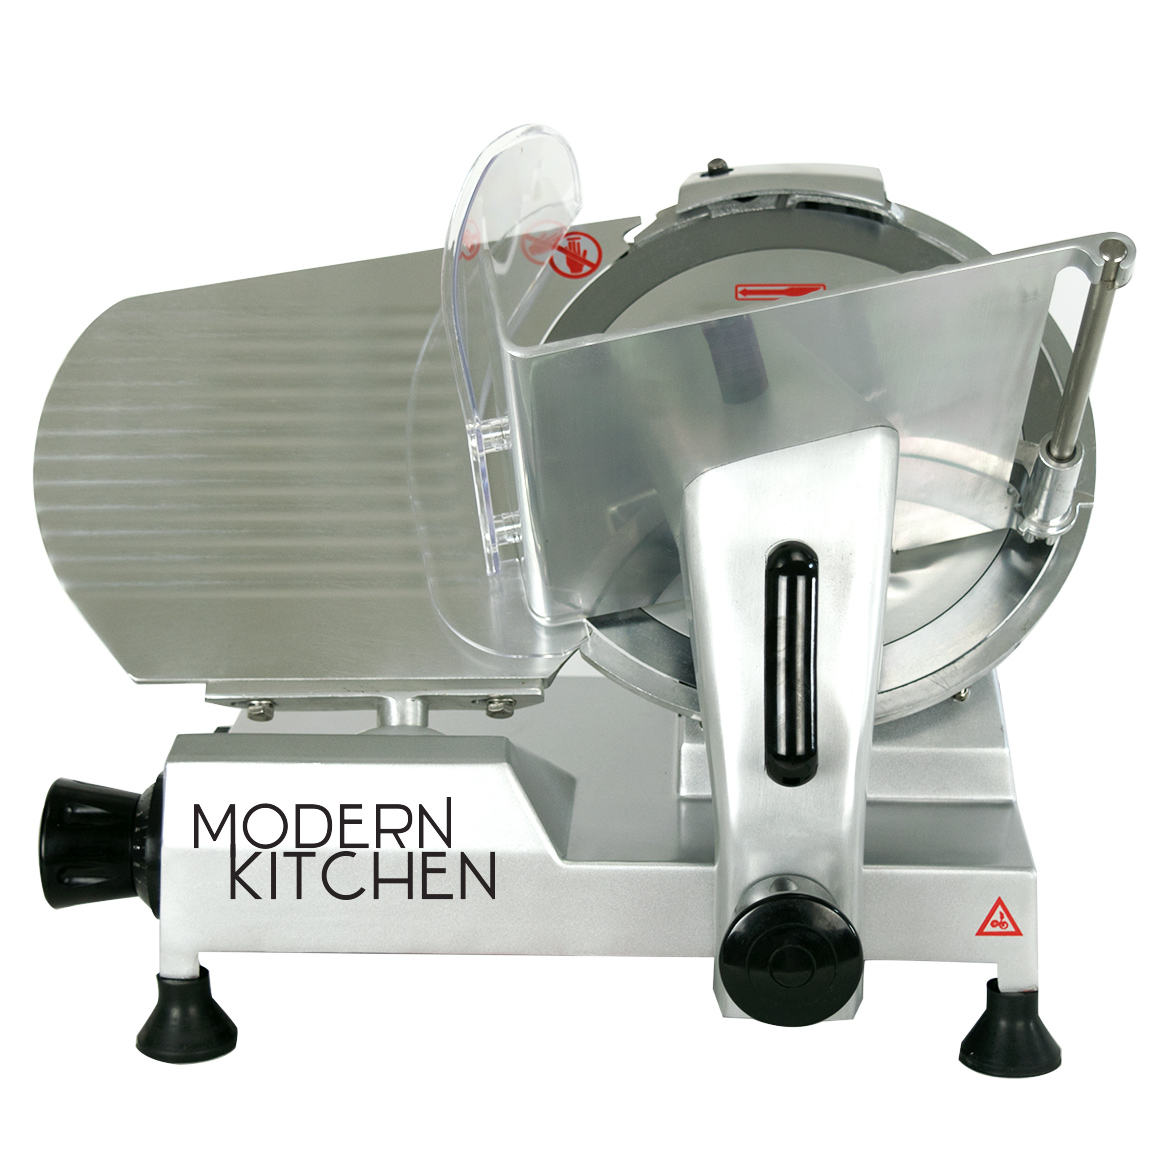 Modern Kitchen MK12MS Electric 12-Inch Deli Meat Cheese S...